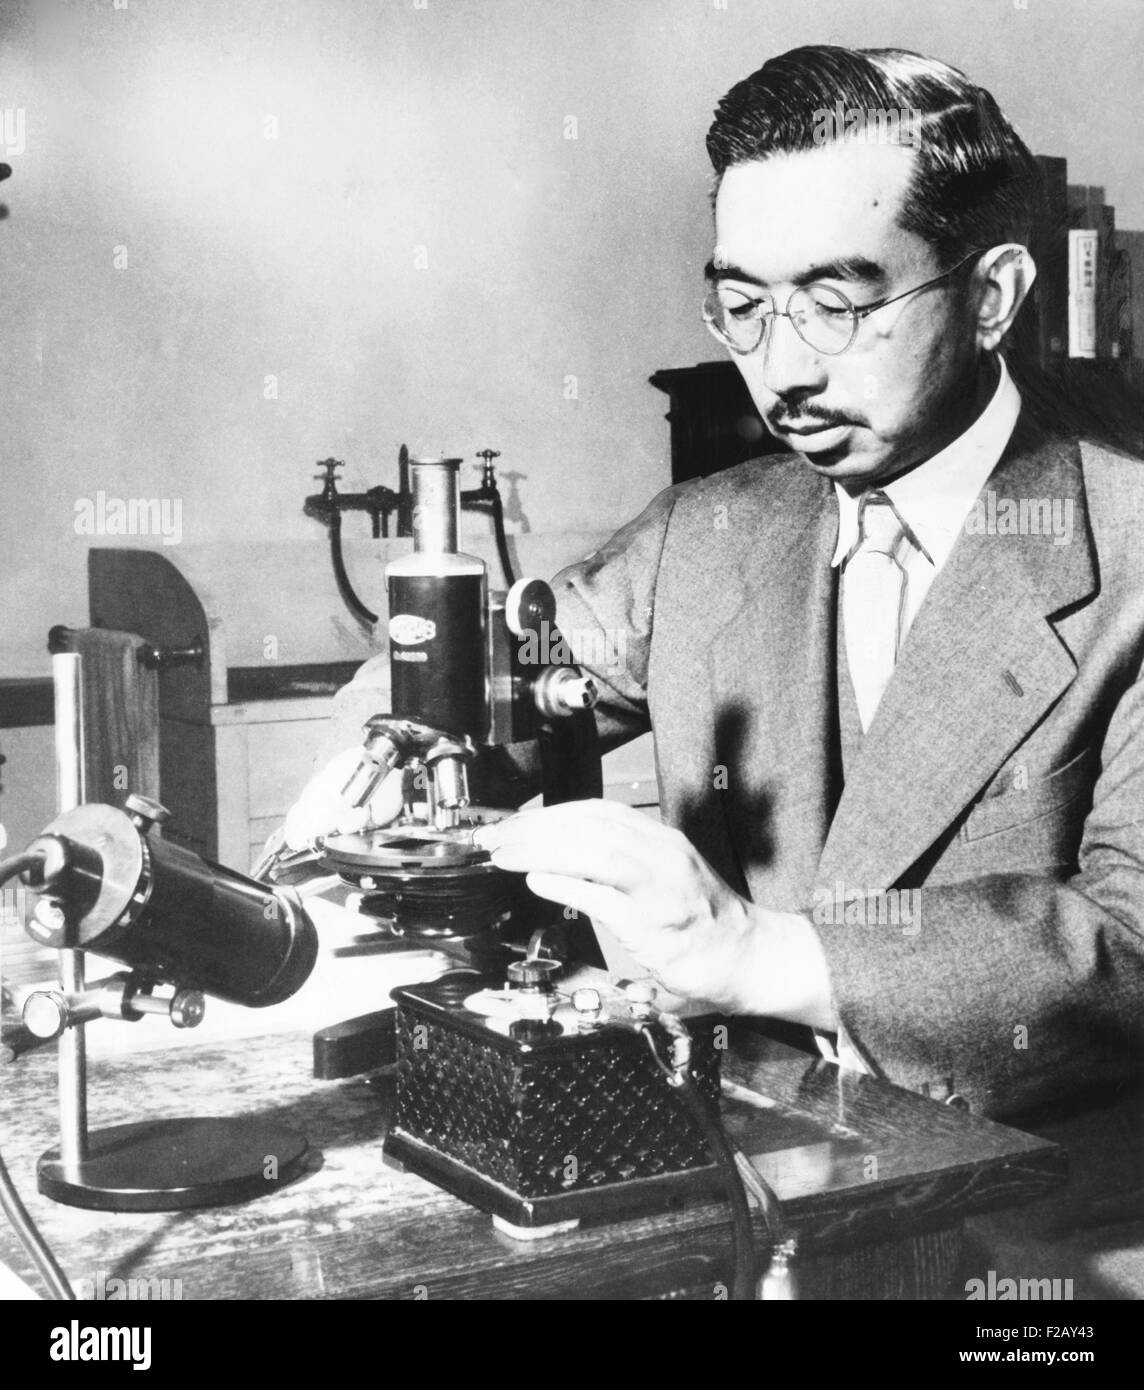 Emperor Hirohito puts specimens on a slide under the microscope in his marine biology laboratory. July 31, 1954. - Stock Image